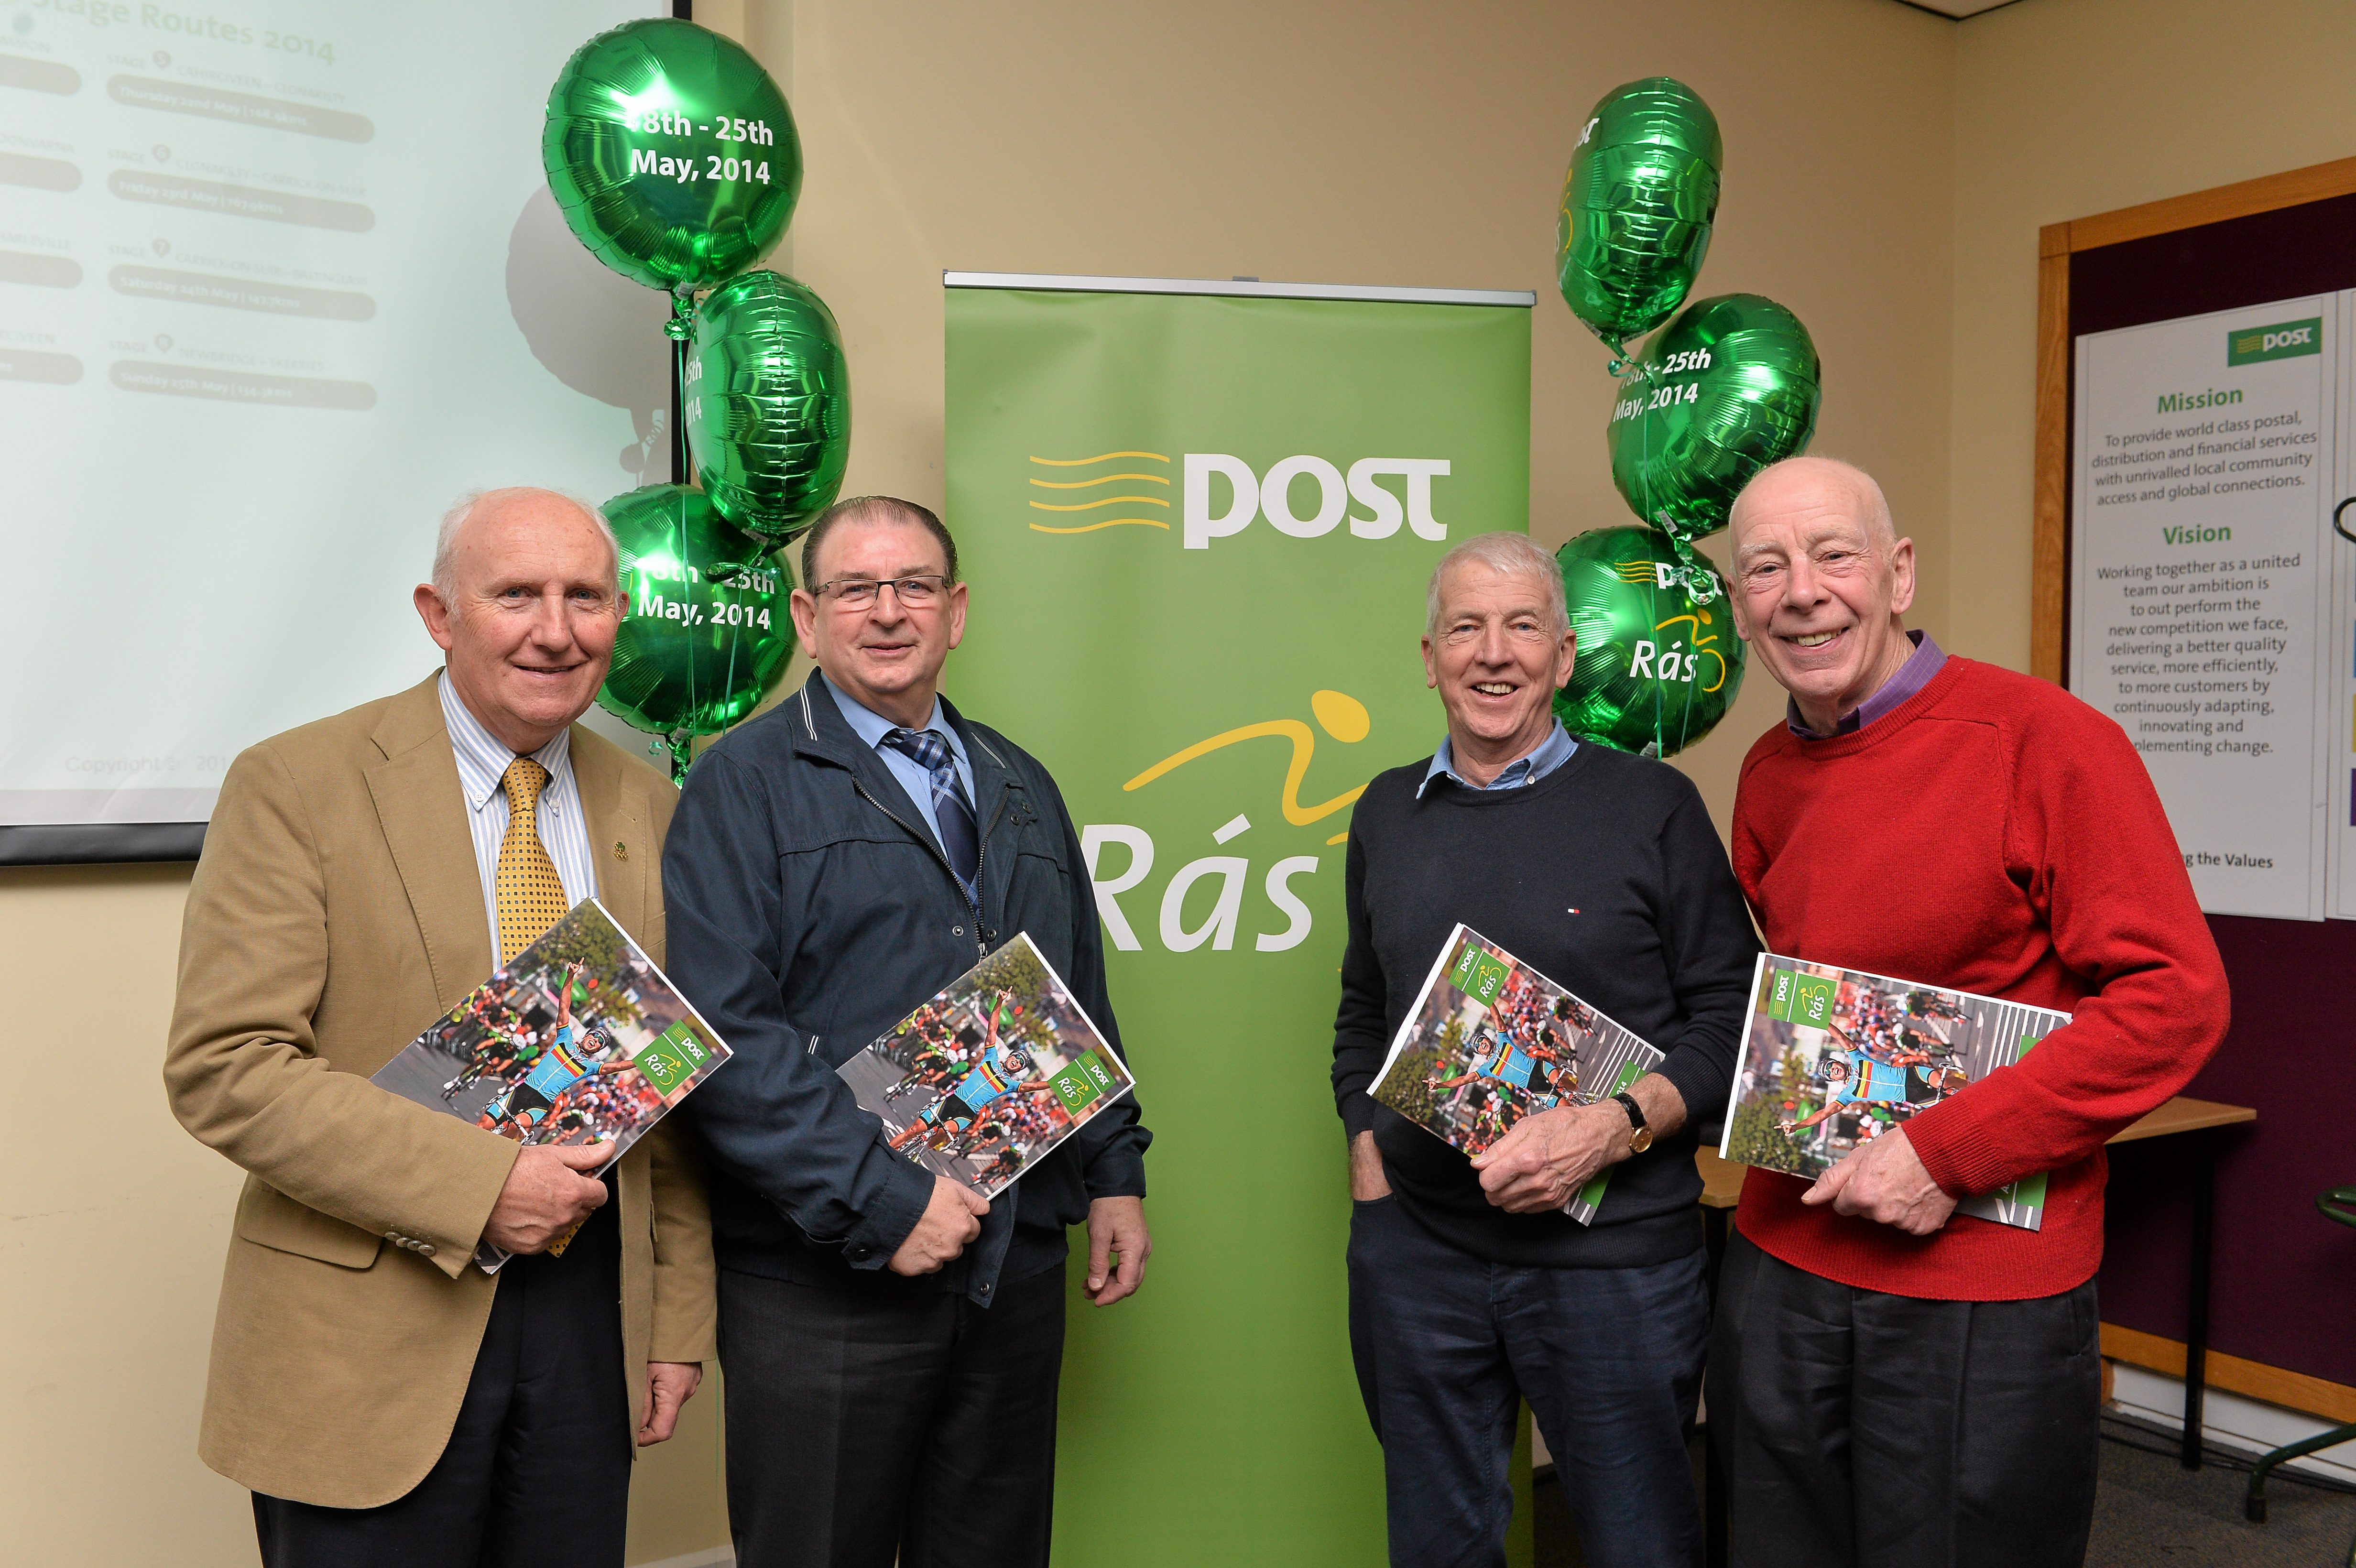 PRESS RELEASE: An Post Rás 2014 comes to Carrick!